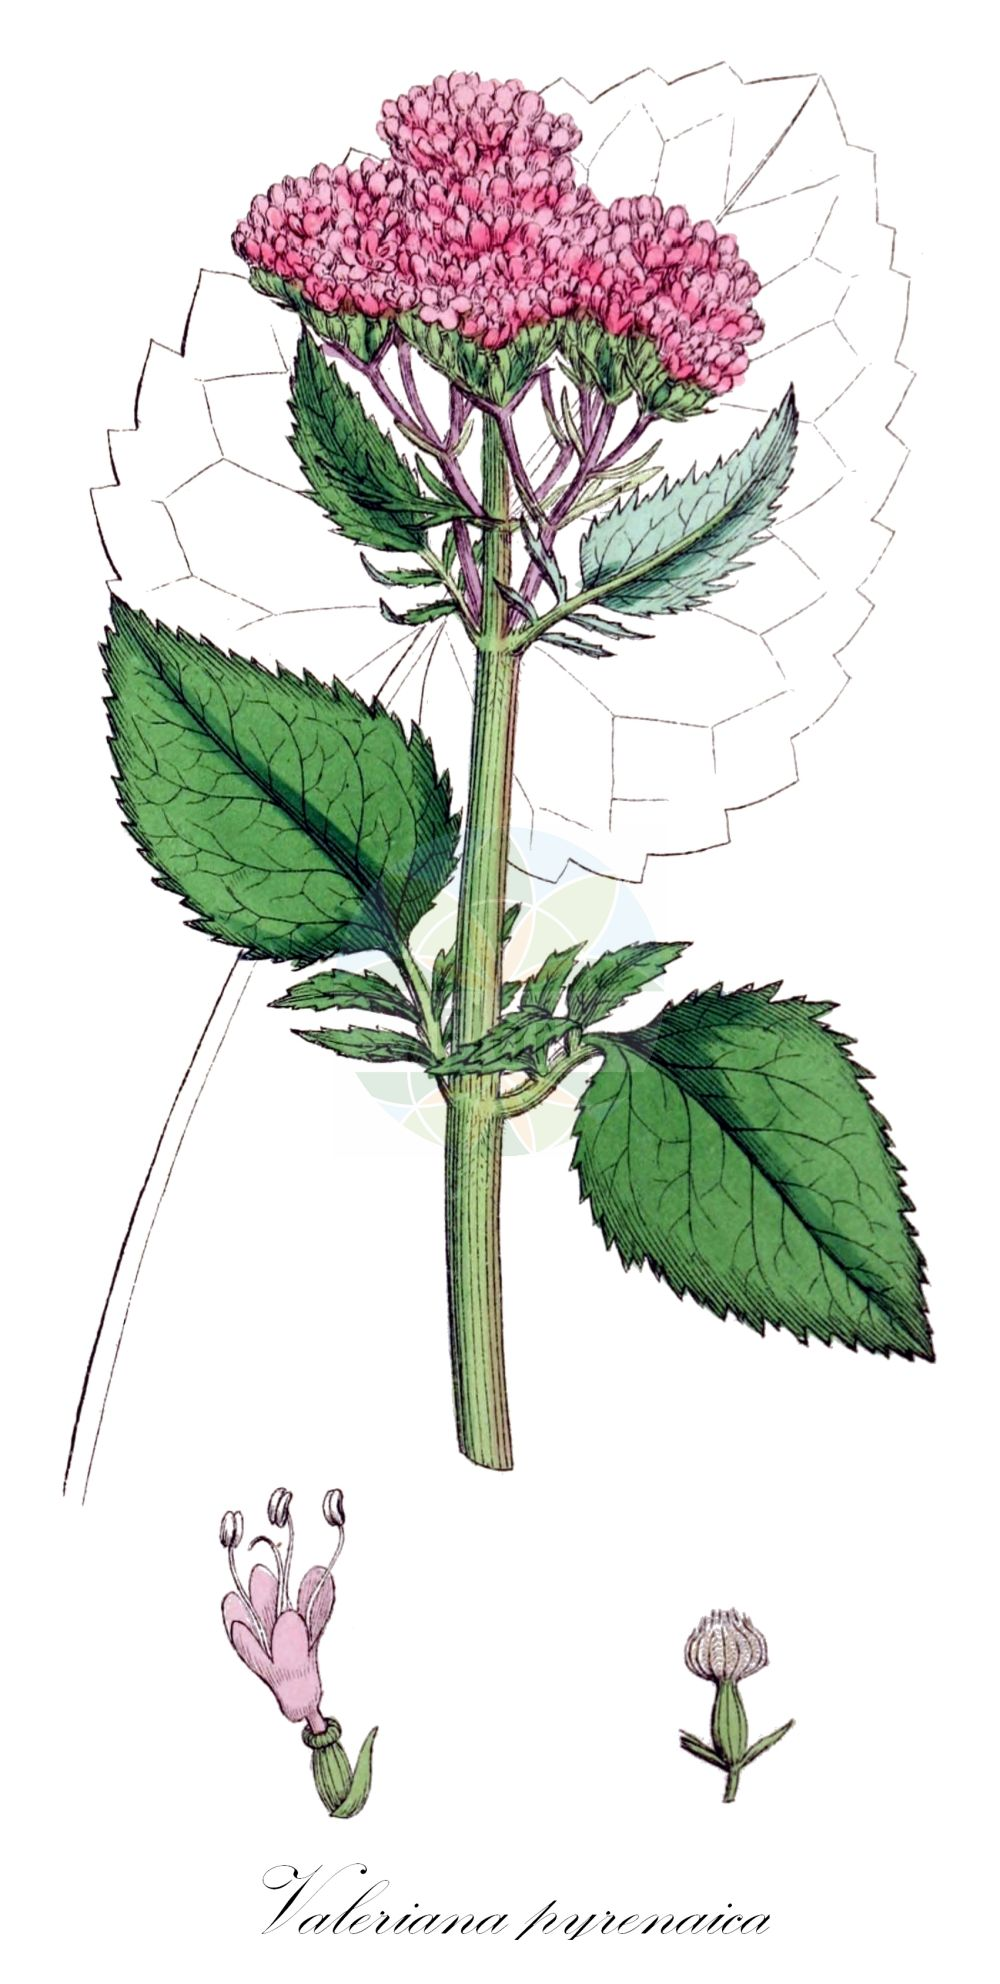 Historische Abbildung von Valeriana pyrenaica. Das Bild zeigt Blatt, Bluete, Frucht und Same. ---- Historical Drawing of Valeriana pyrenaica.The image is showing leaf, flower, fruit and seed.(Valeriana pyrenaica,Valeriana,Baldrian,Valerian,Caprifoliaceae,Geissblattgewaechse,Honeysuckle family,Blatt,Bluete,Frucht,Same,leaf,flower,fruit,seed,Sowerby (1790-1813))